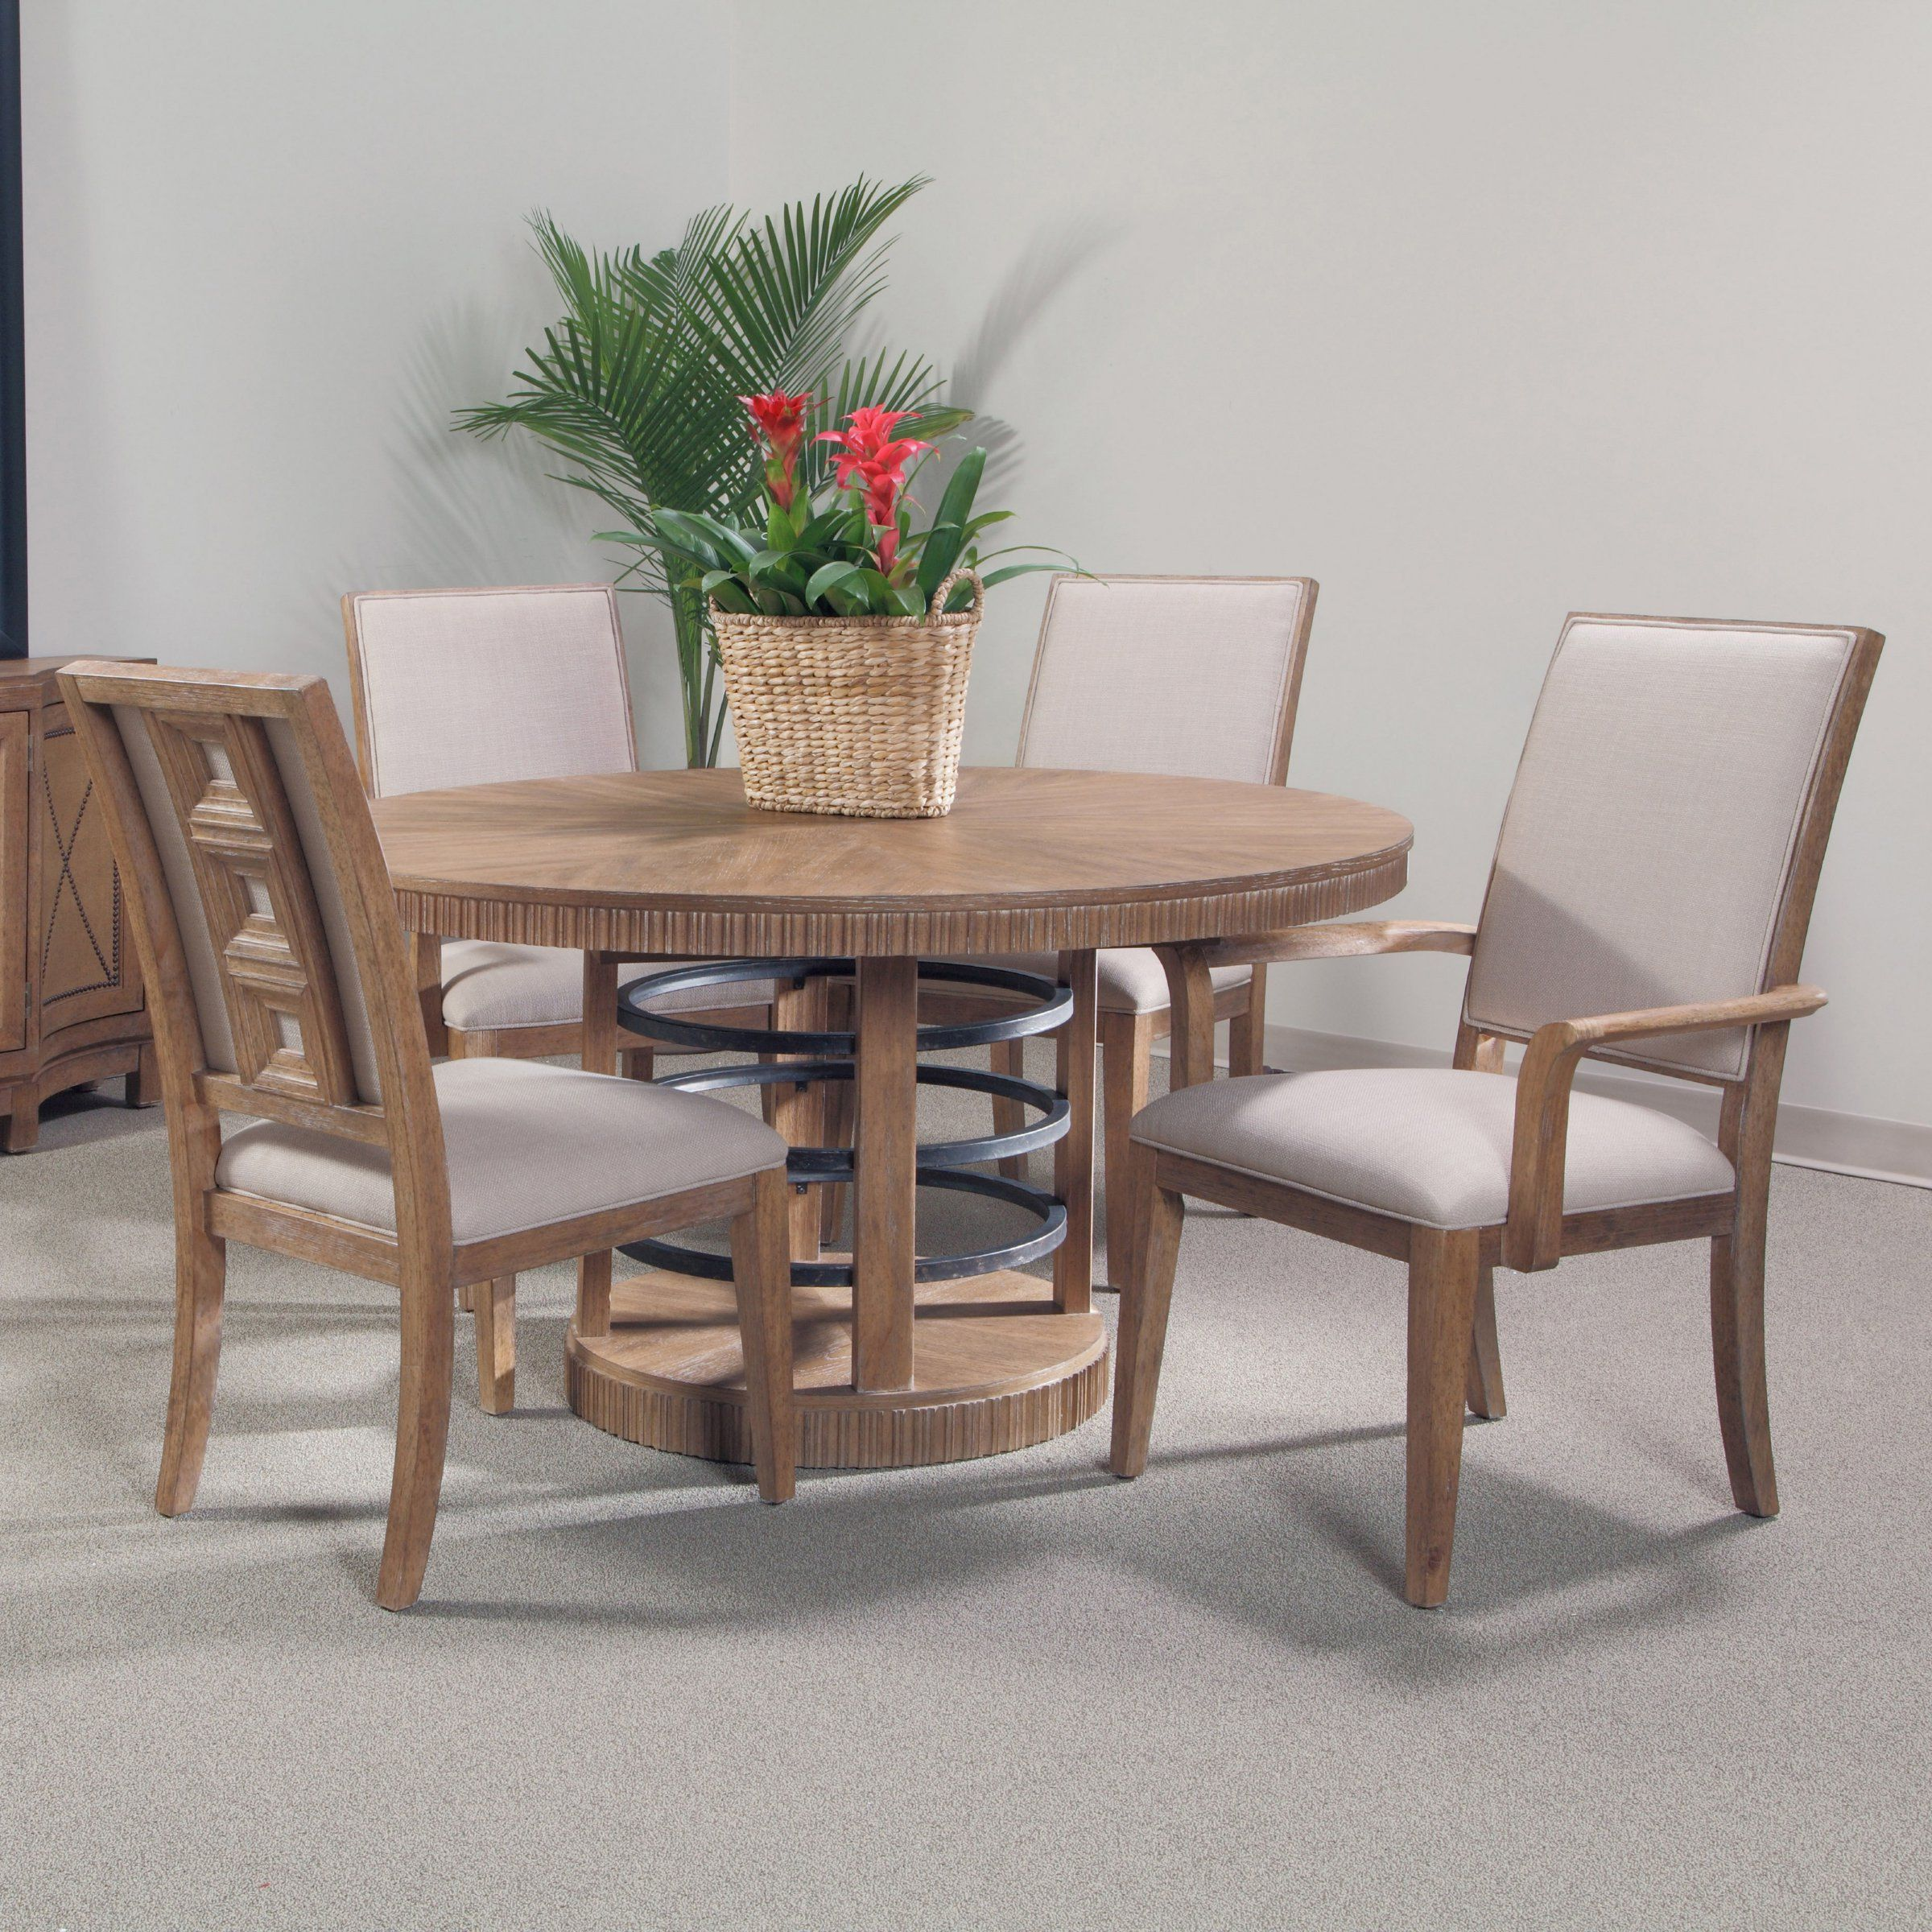 Double crank oval dining table at high fashion home industrial chic - A R T Furniture Ventura Collection Round Dining Set From Hayneedle Com